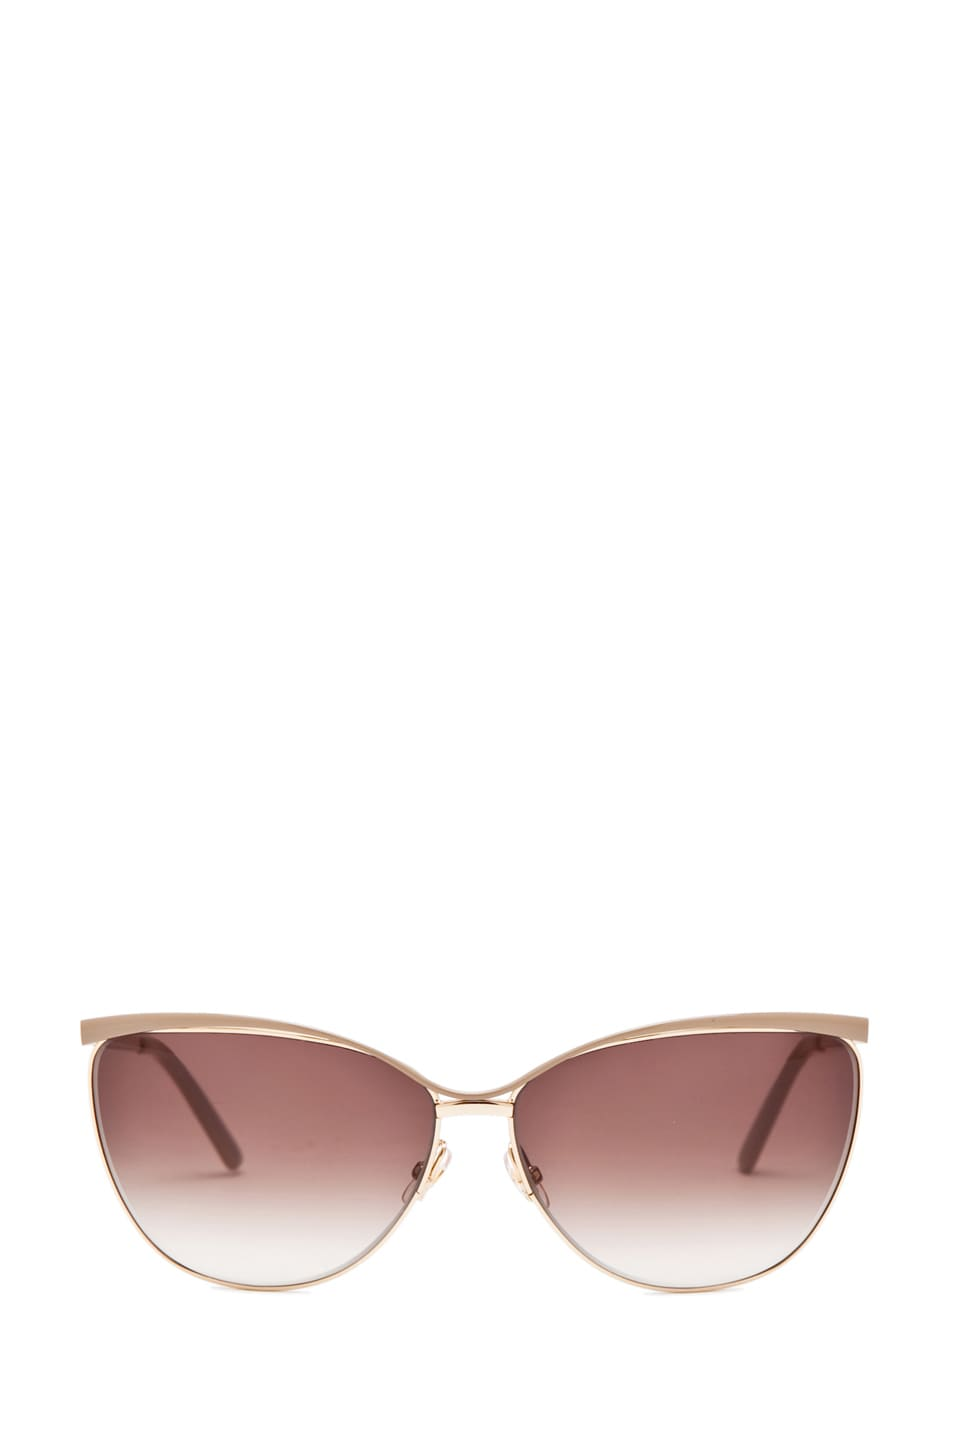 Image 1 of Gucci 2891/S in Caramel Rose Gold with Gray Gradient Lens